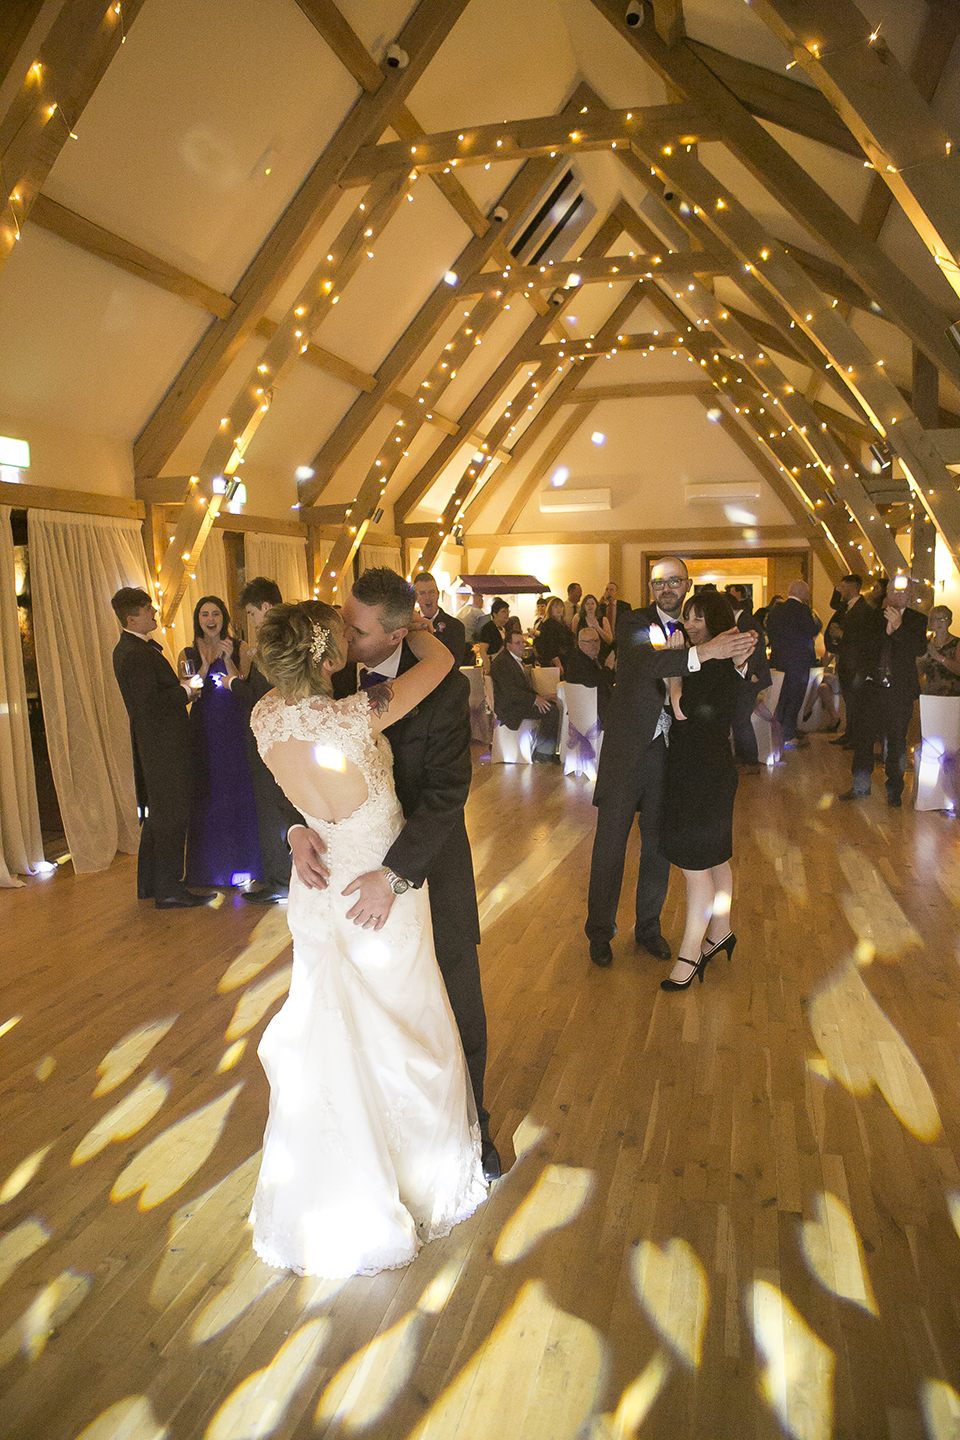 The Bridge Barn is the perfect wedding reception venue in Cambridgeshire for celebrating your special day